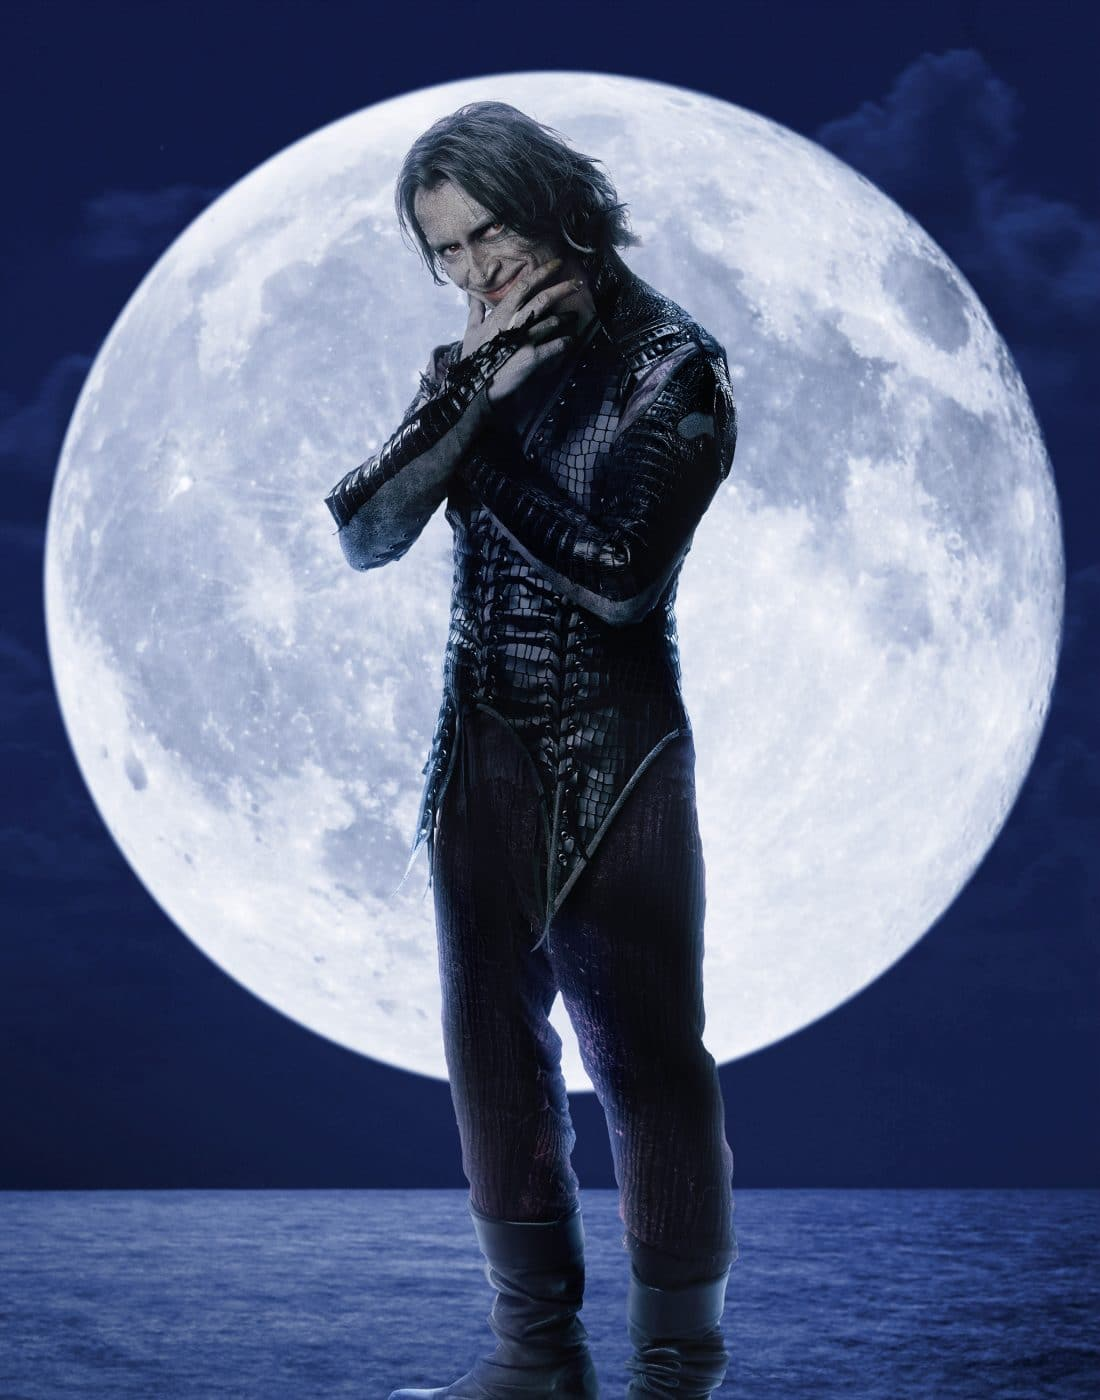 """ONCE UPON A TIME - ABC's """"Once Upon a Time"""" stars Robert Carlyle as Rumplestiltskin/Mr. Gold. (ABC/Bob D'Amico)"""